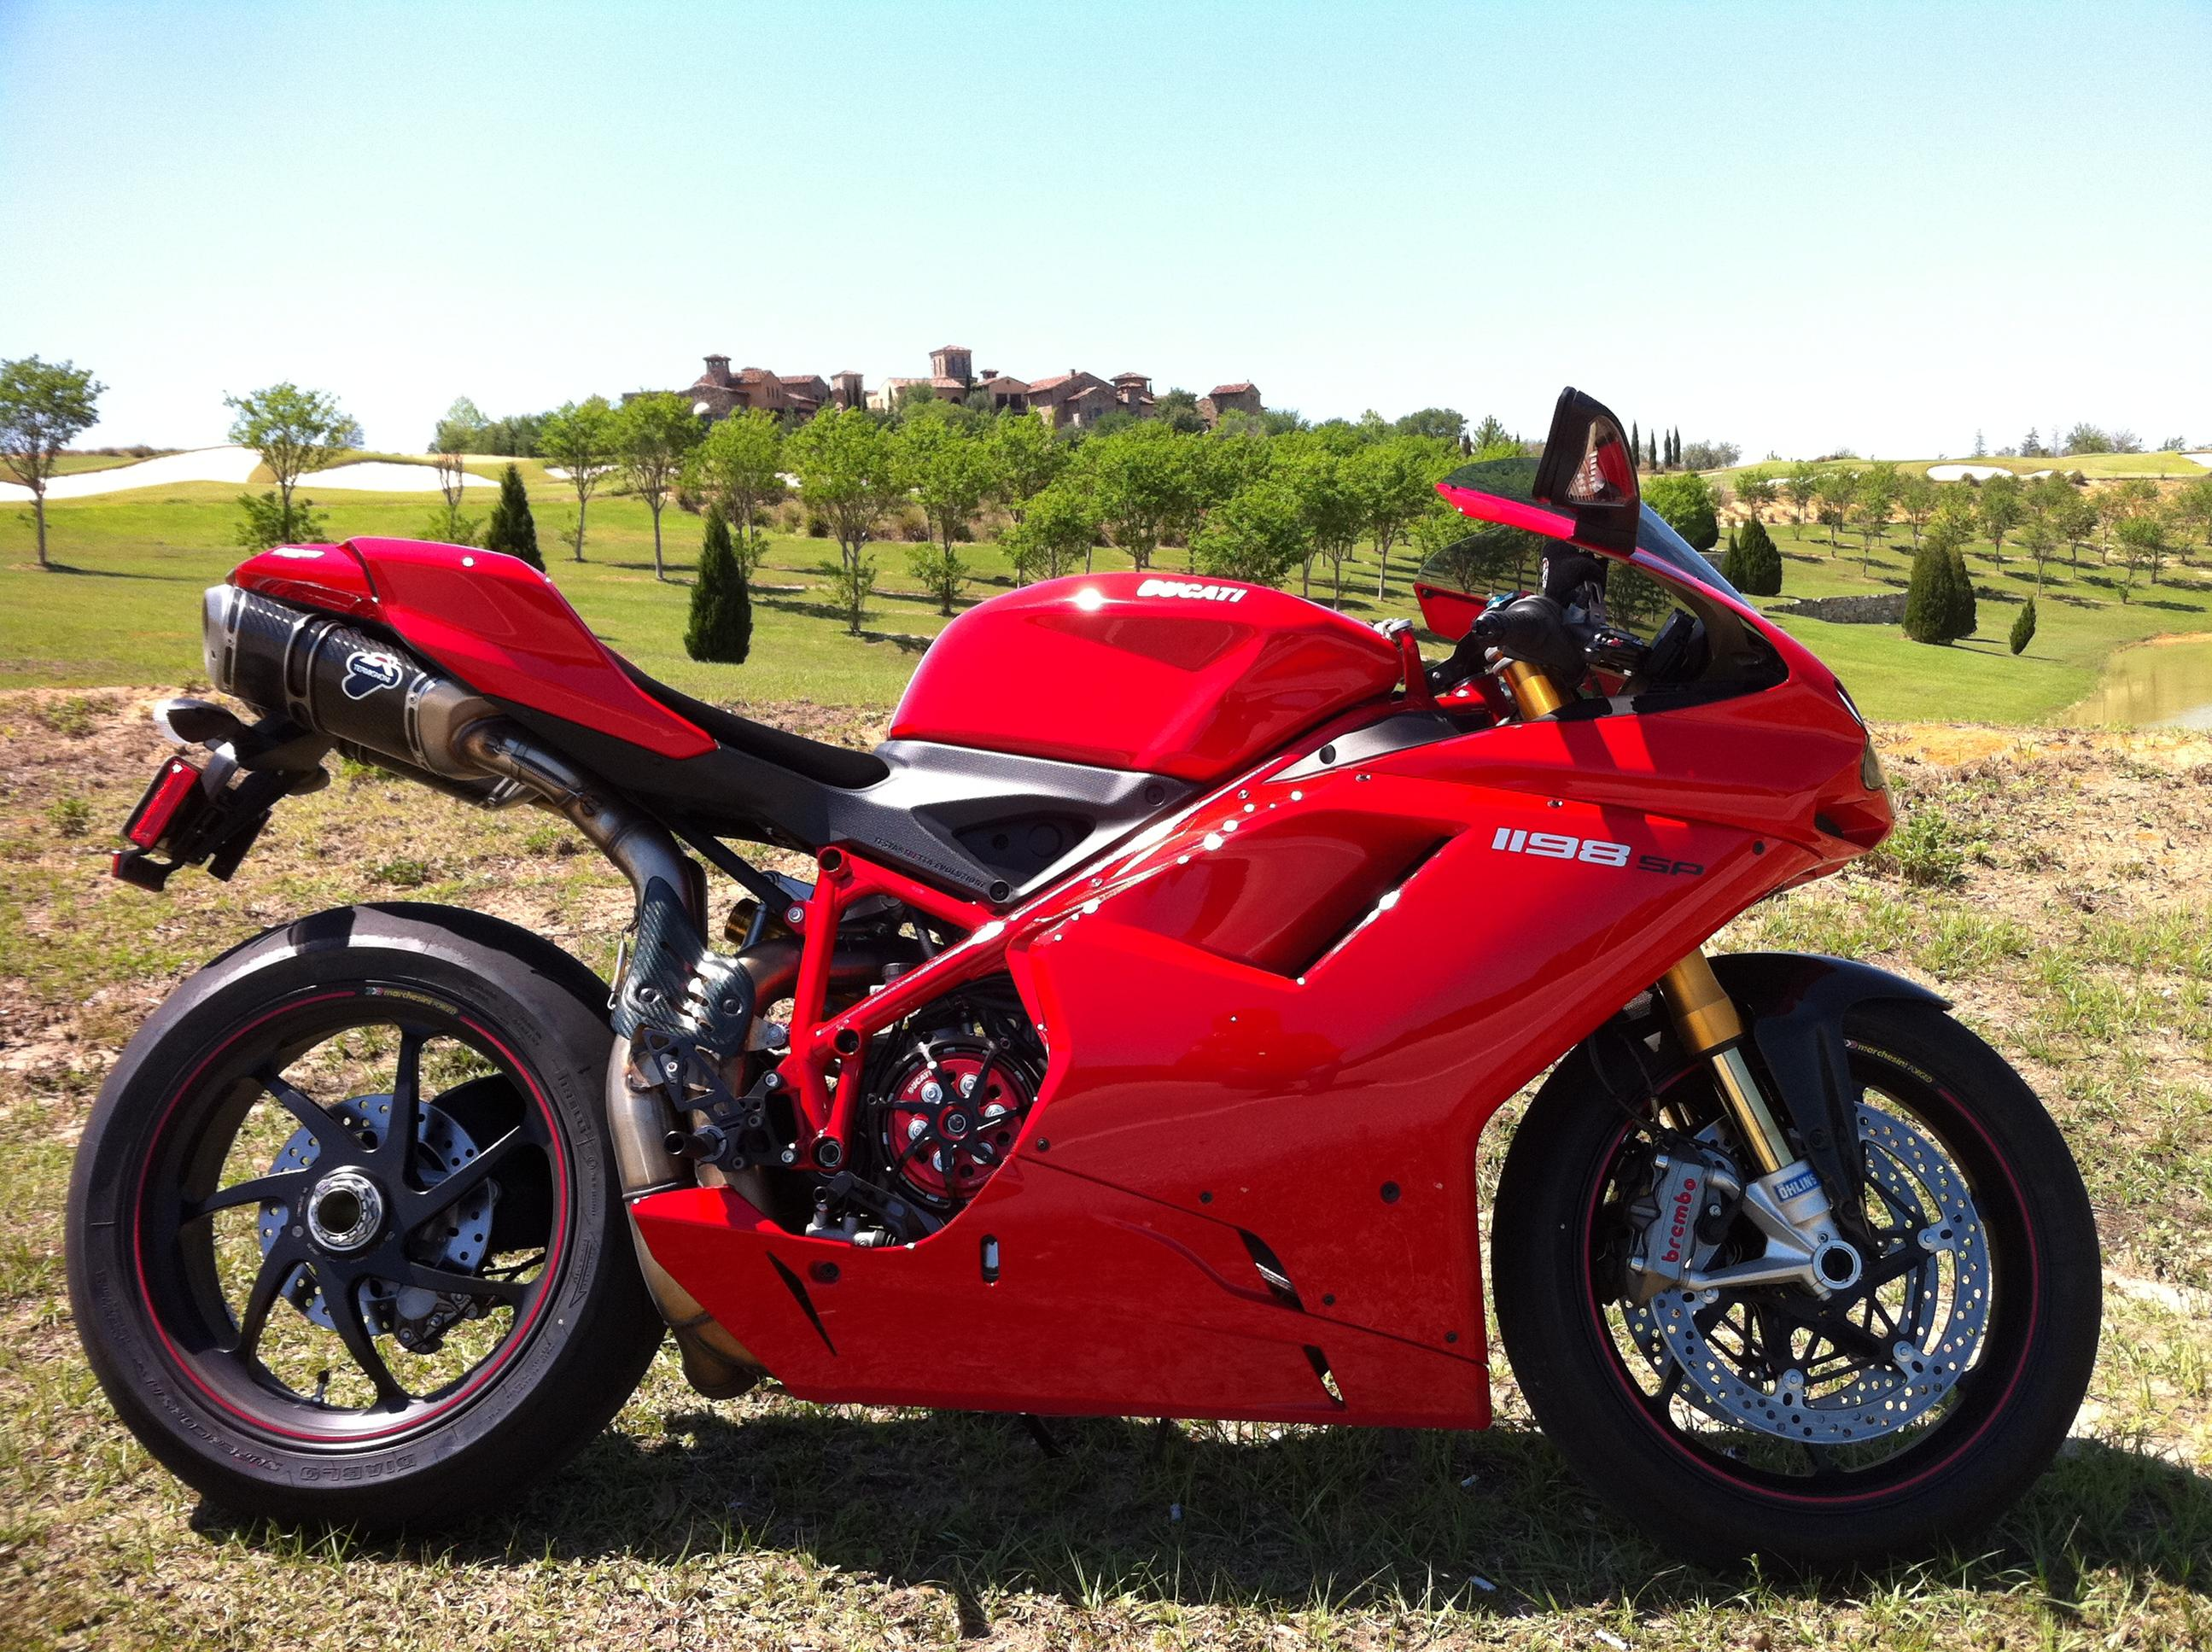 1198sp is here finally - page 2 - ducati forum | the home